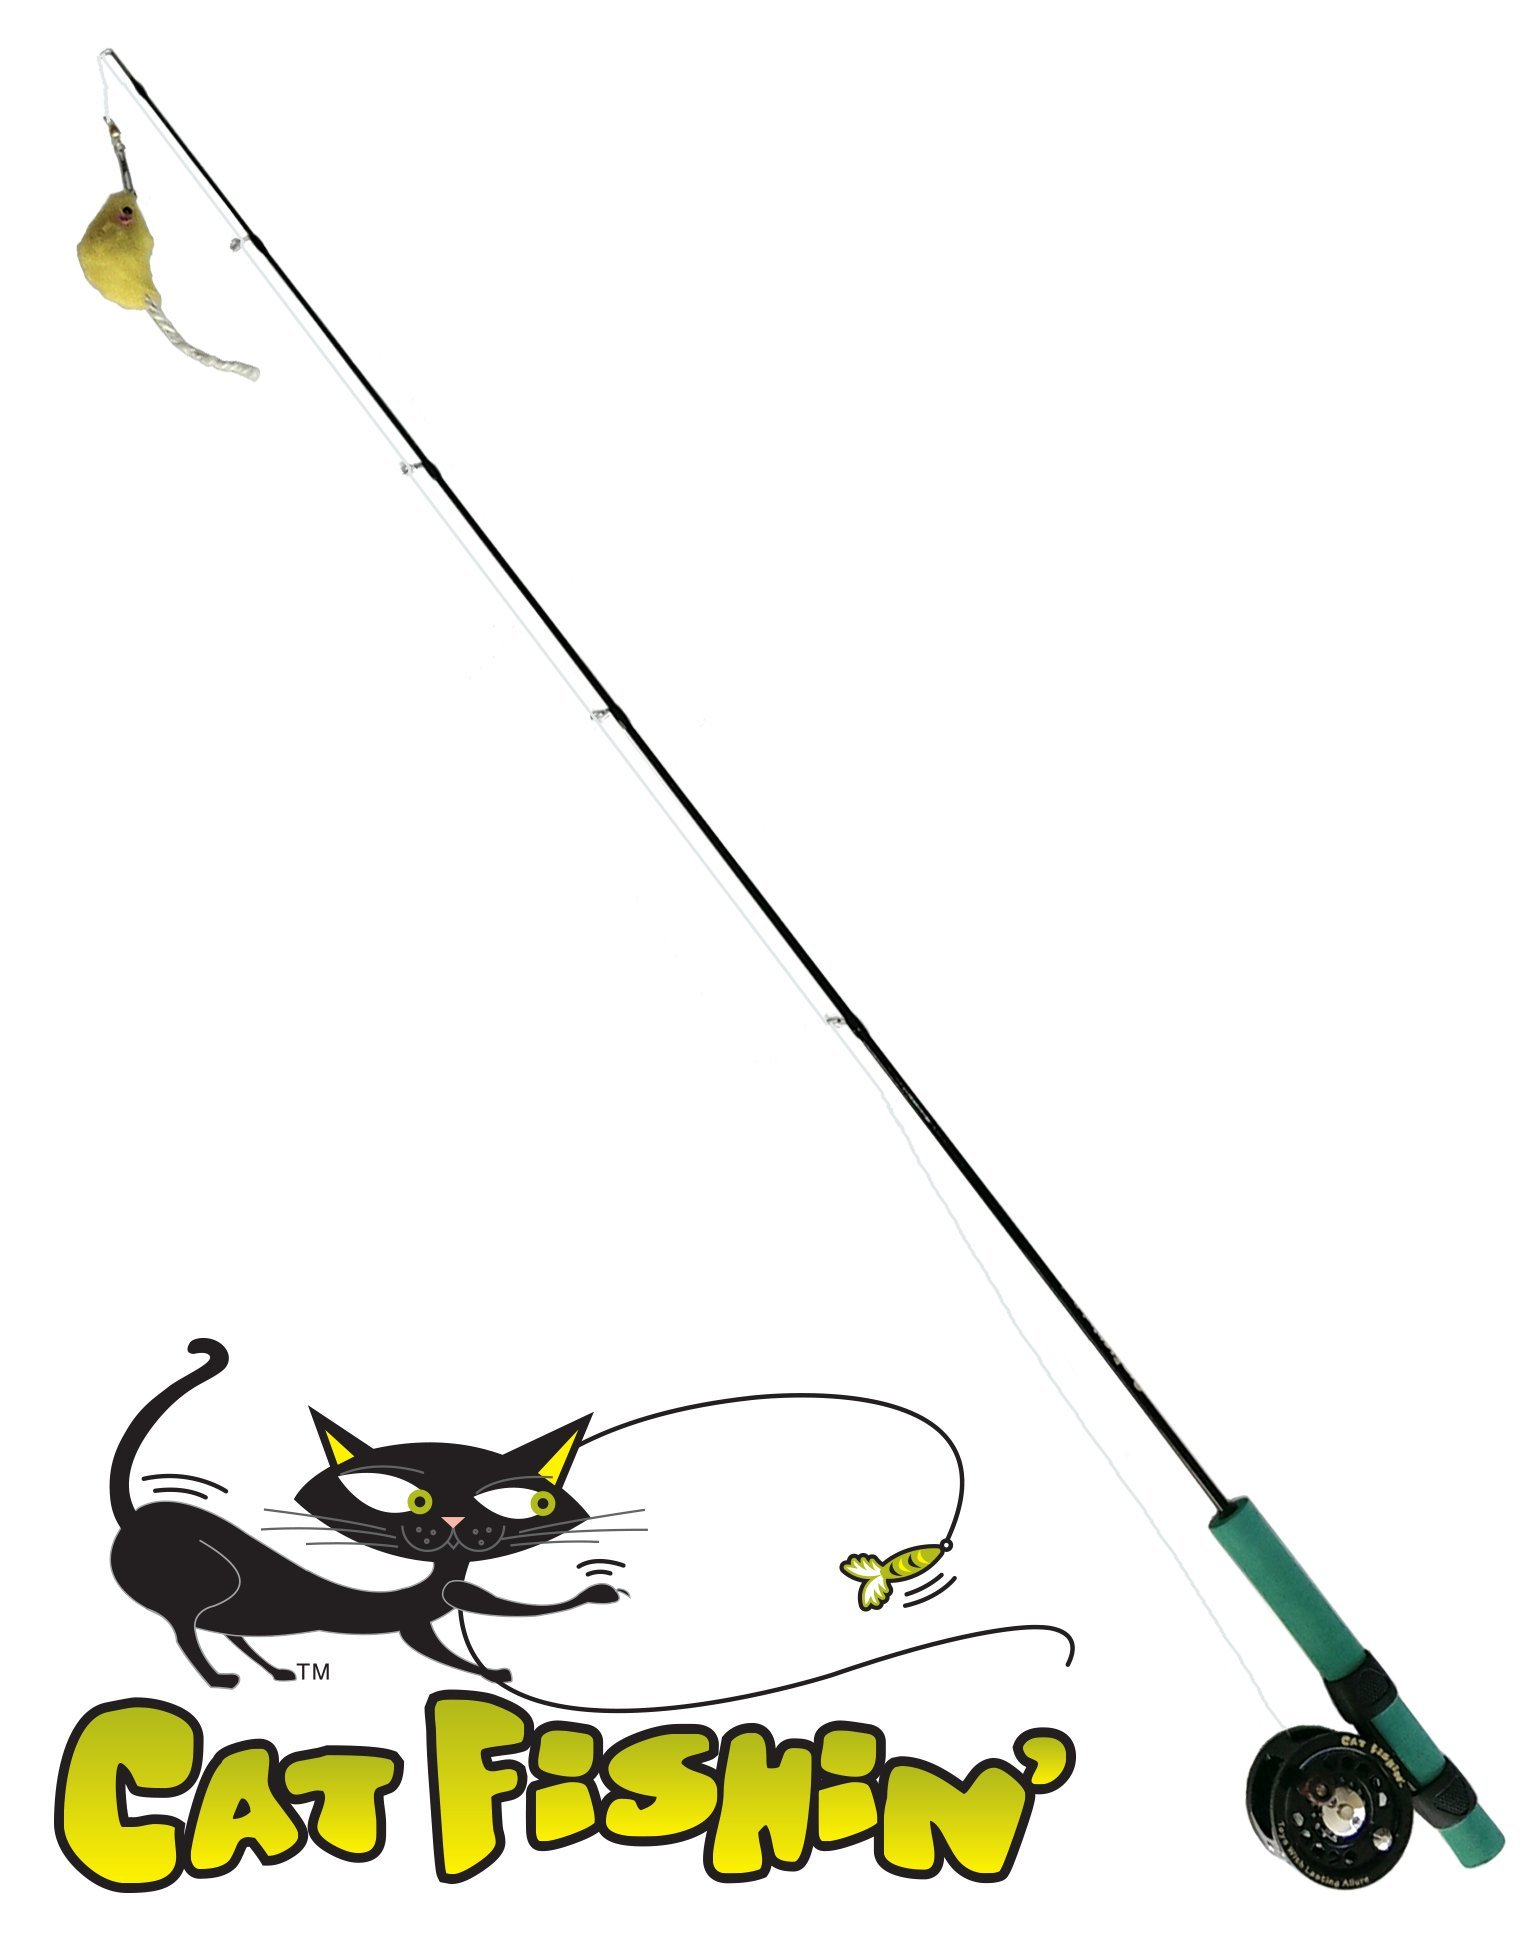 Cat Fishin'': The Toy with Lasting Allure. The Ultimate Interactive Toy for The Health and Well-Being of Your Cat by Cat Fishin'